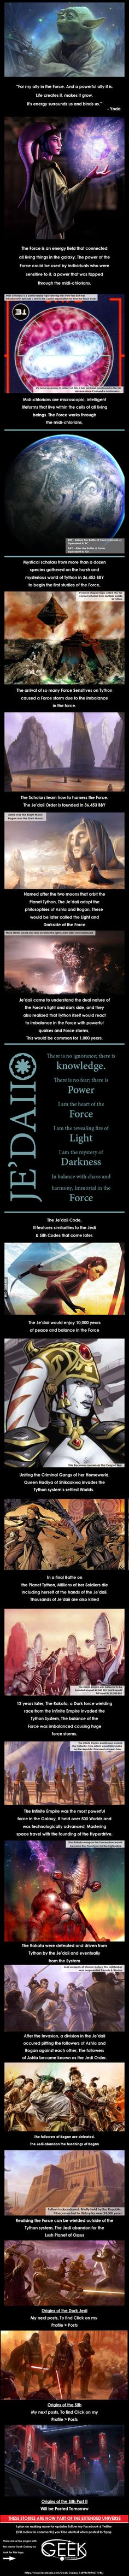 Origins of the Jedi (Star Wars History)